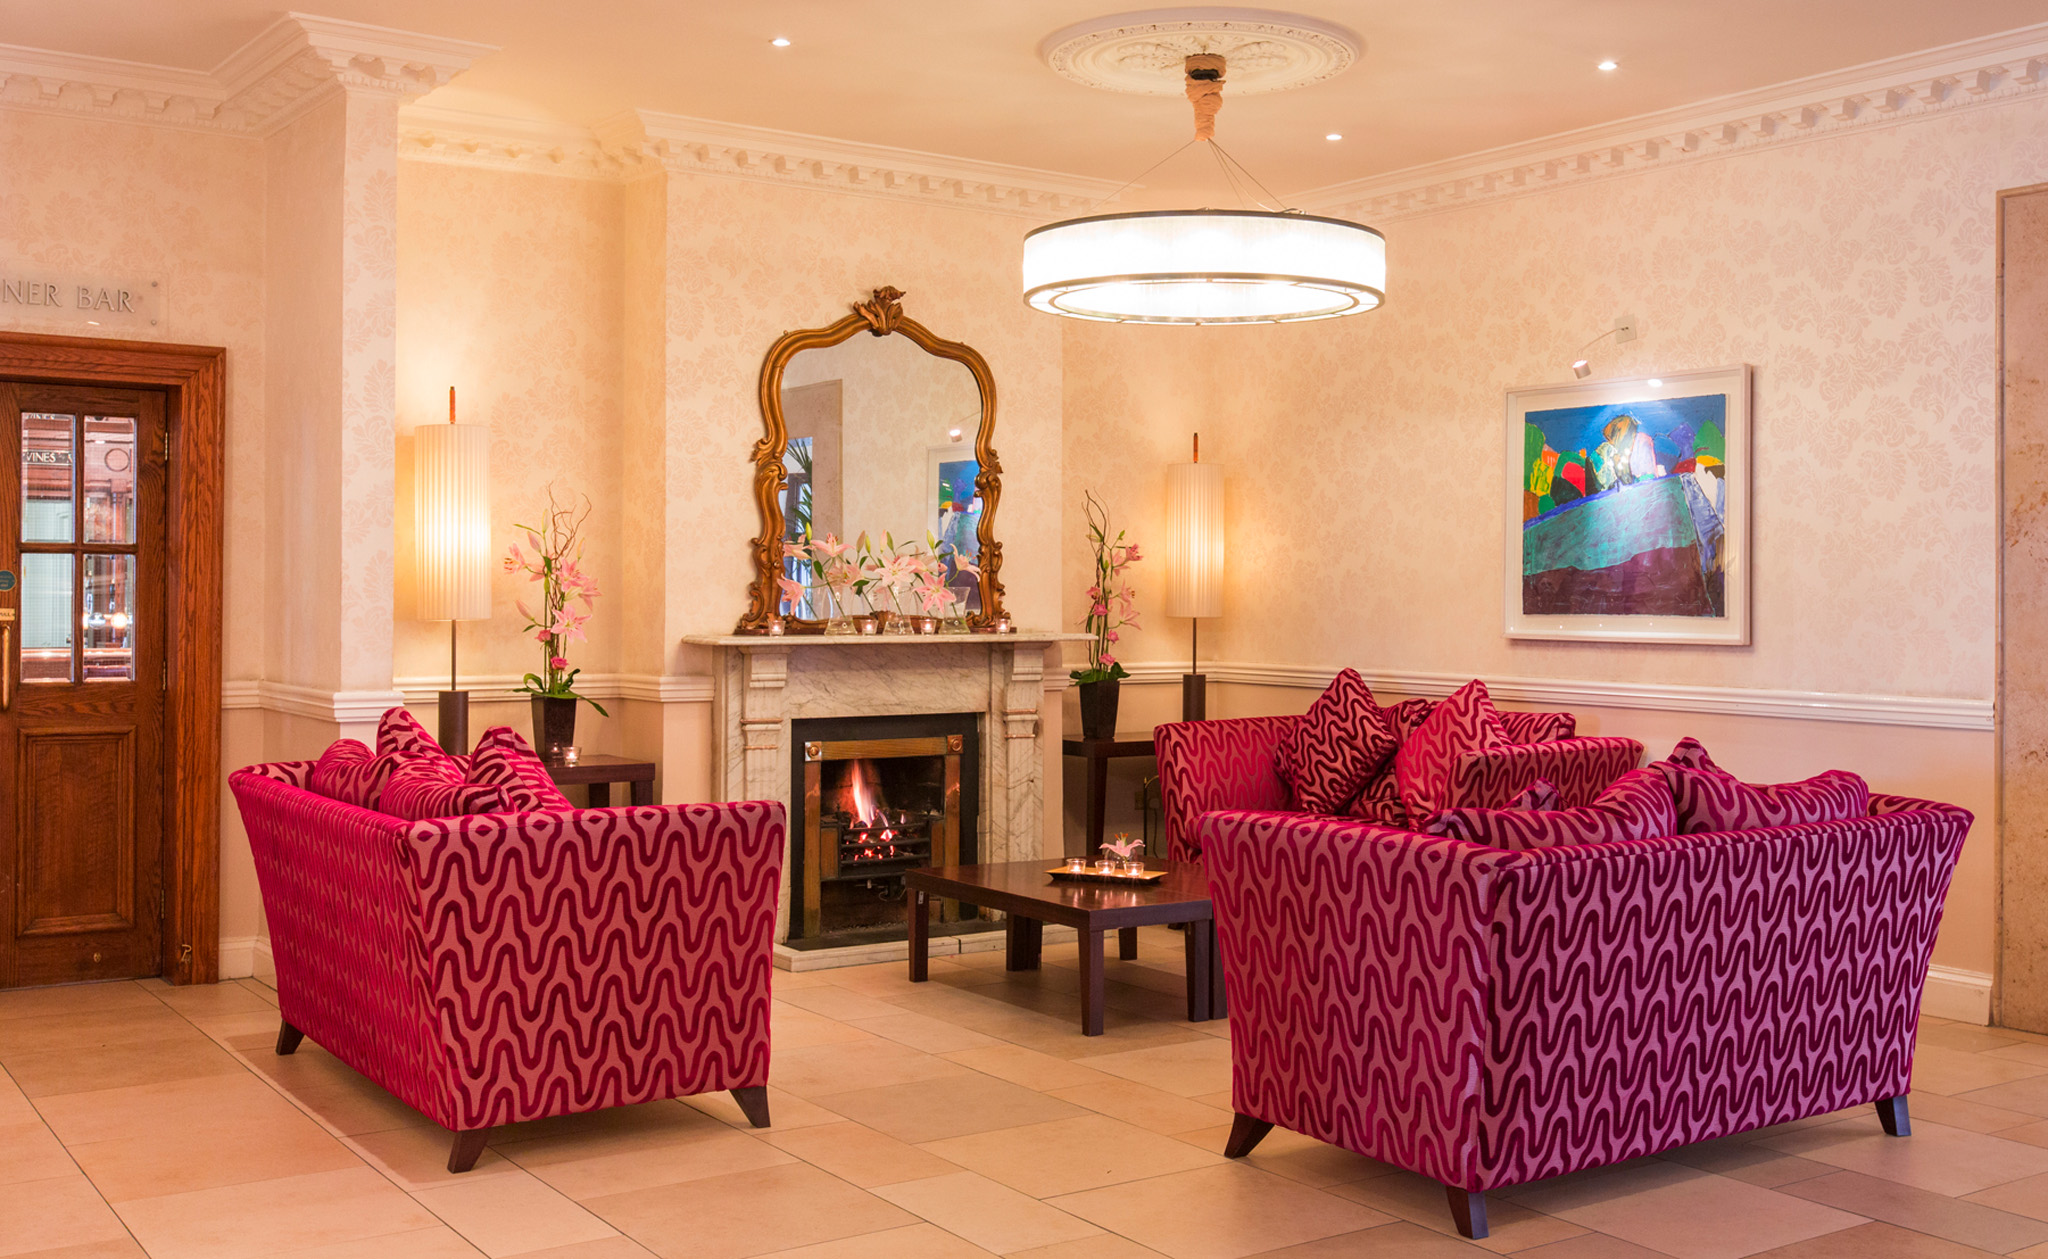 Marine Hotel | Dublin | A Warm Welcome Awaits